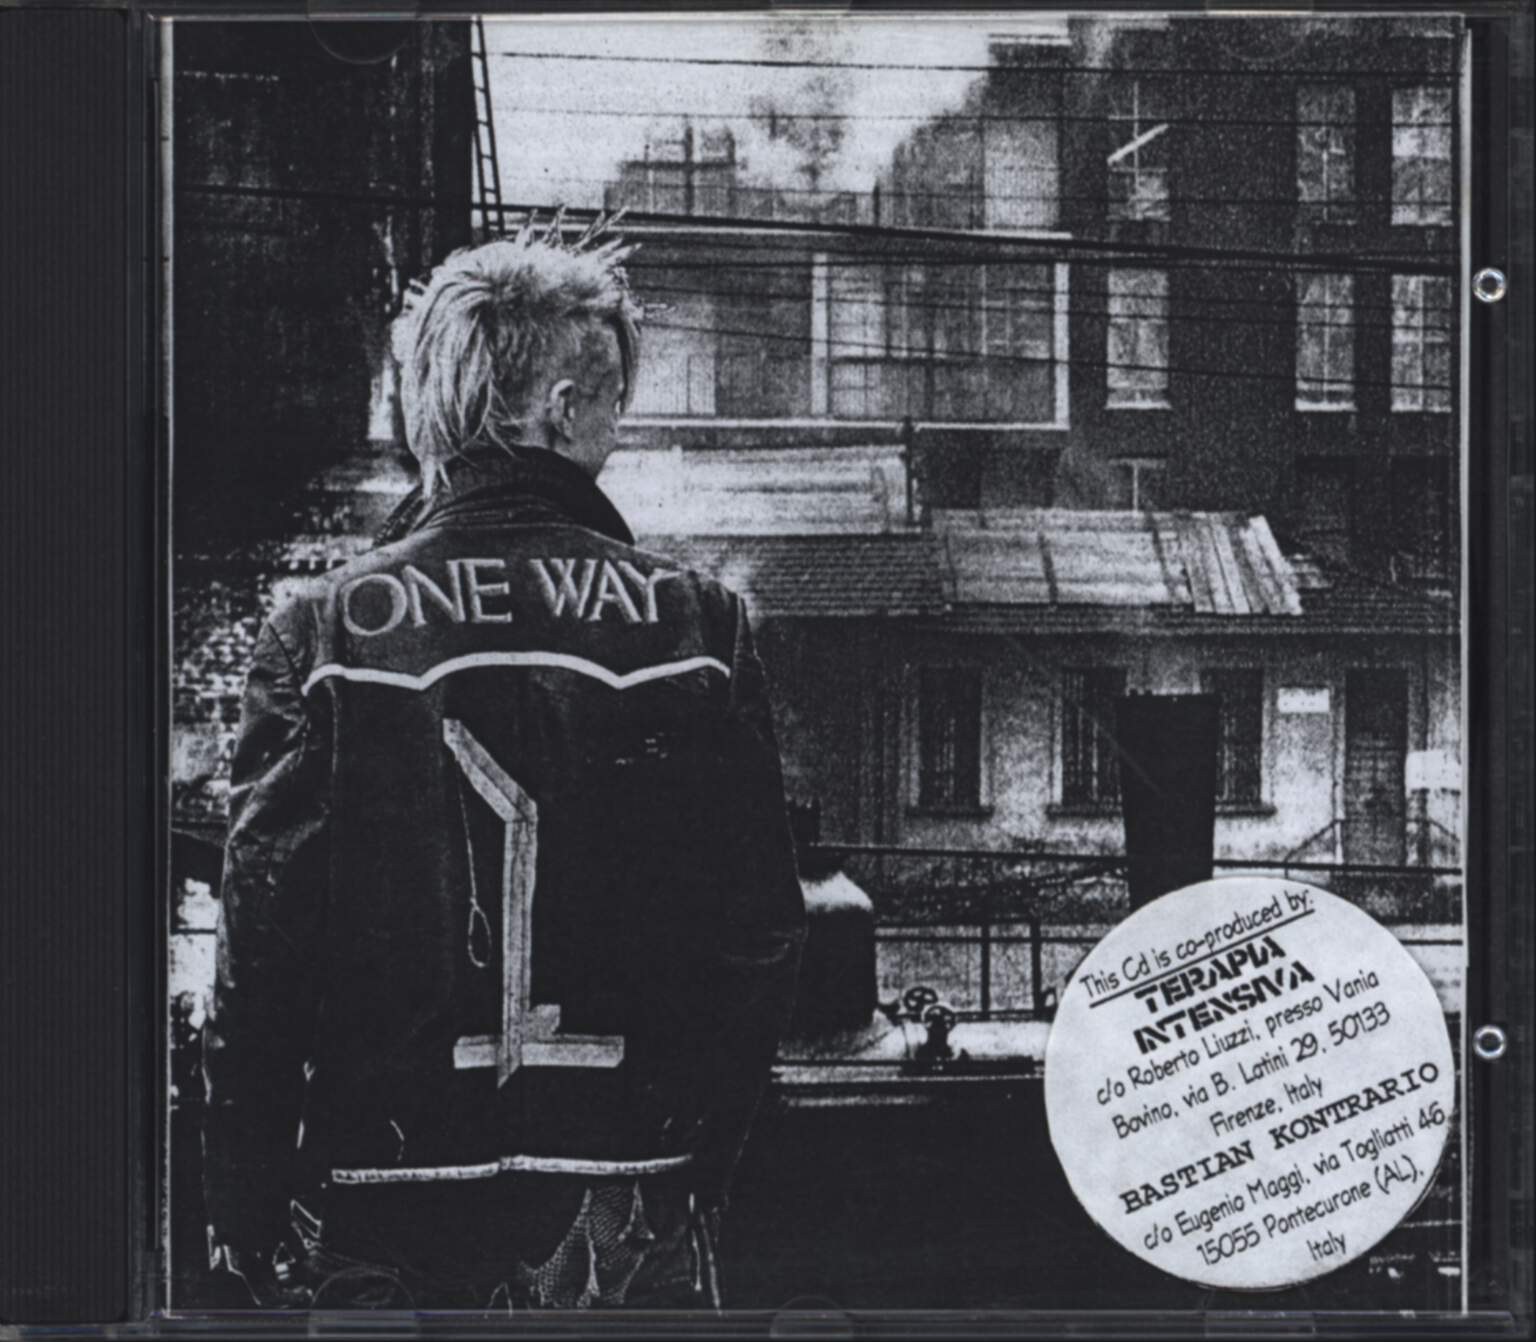 Disarm: One Way ?, CD